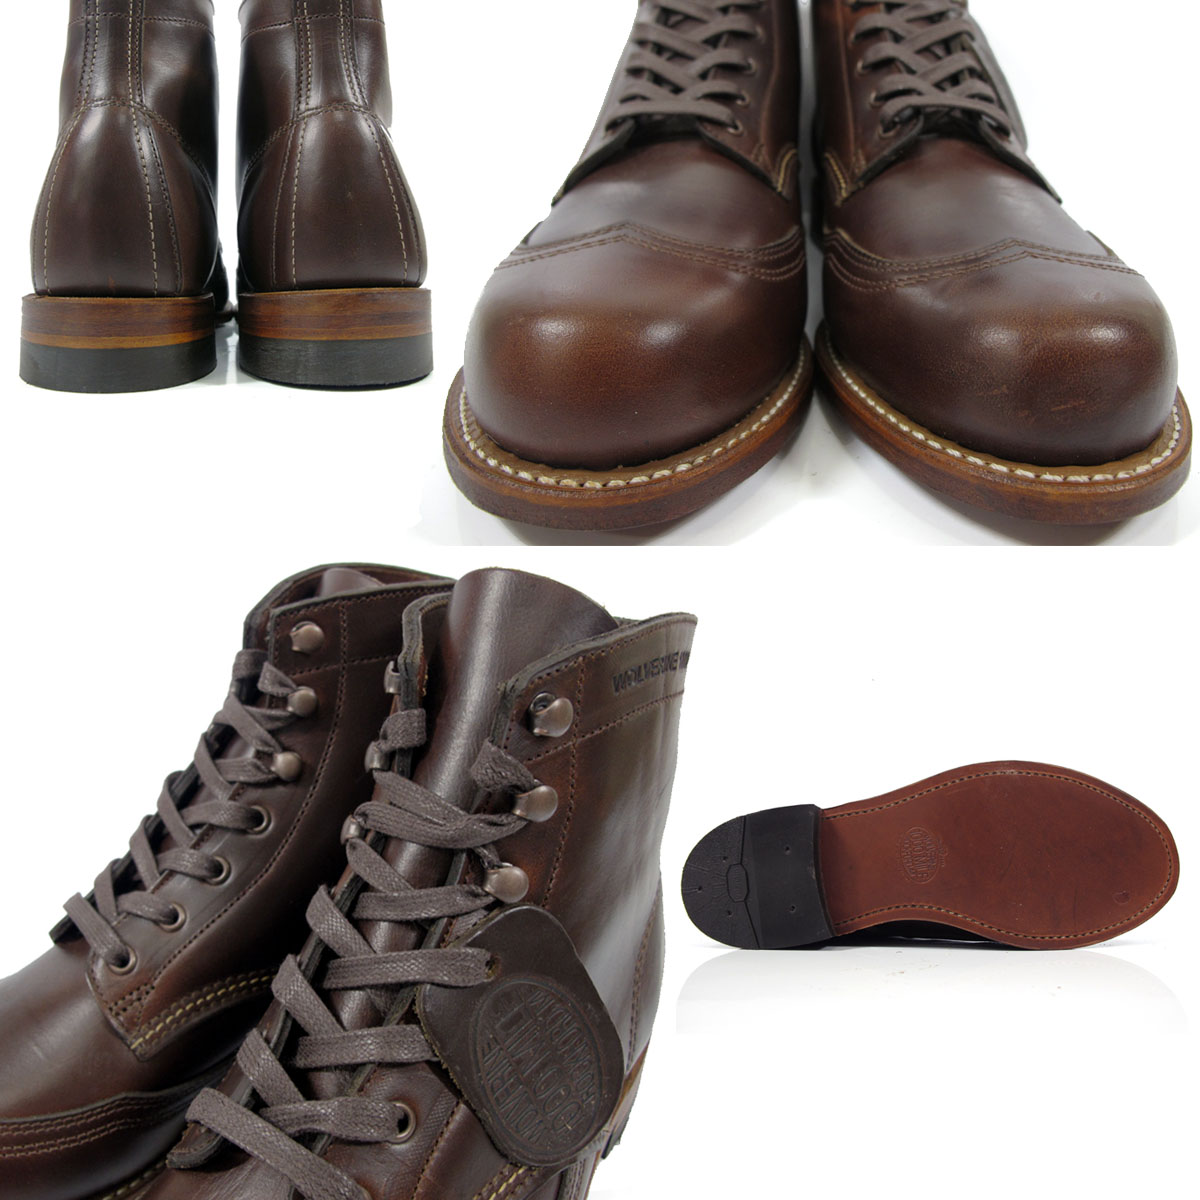 6377ec9d55a Wolverene 1,000 miles boots WOLVERINE W05342 brown Ho wink ROM Excel wing  tip men boots ADDISON 1000MILE Horween Chromexcel LeAther WINGTIP BOOT